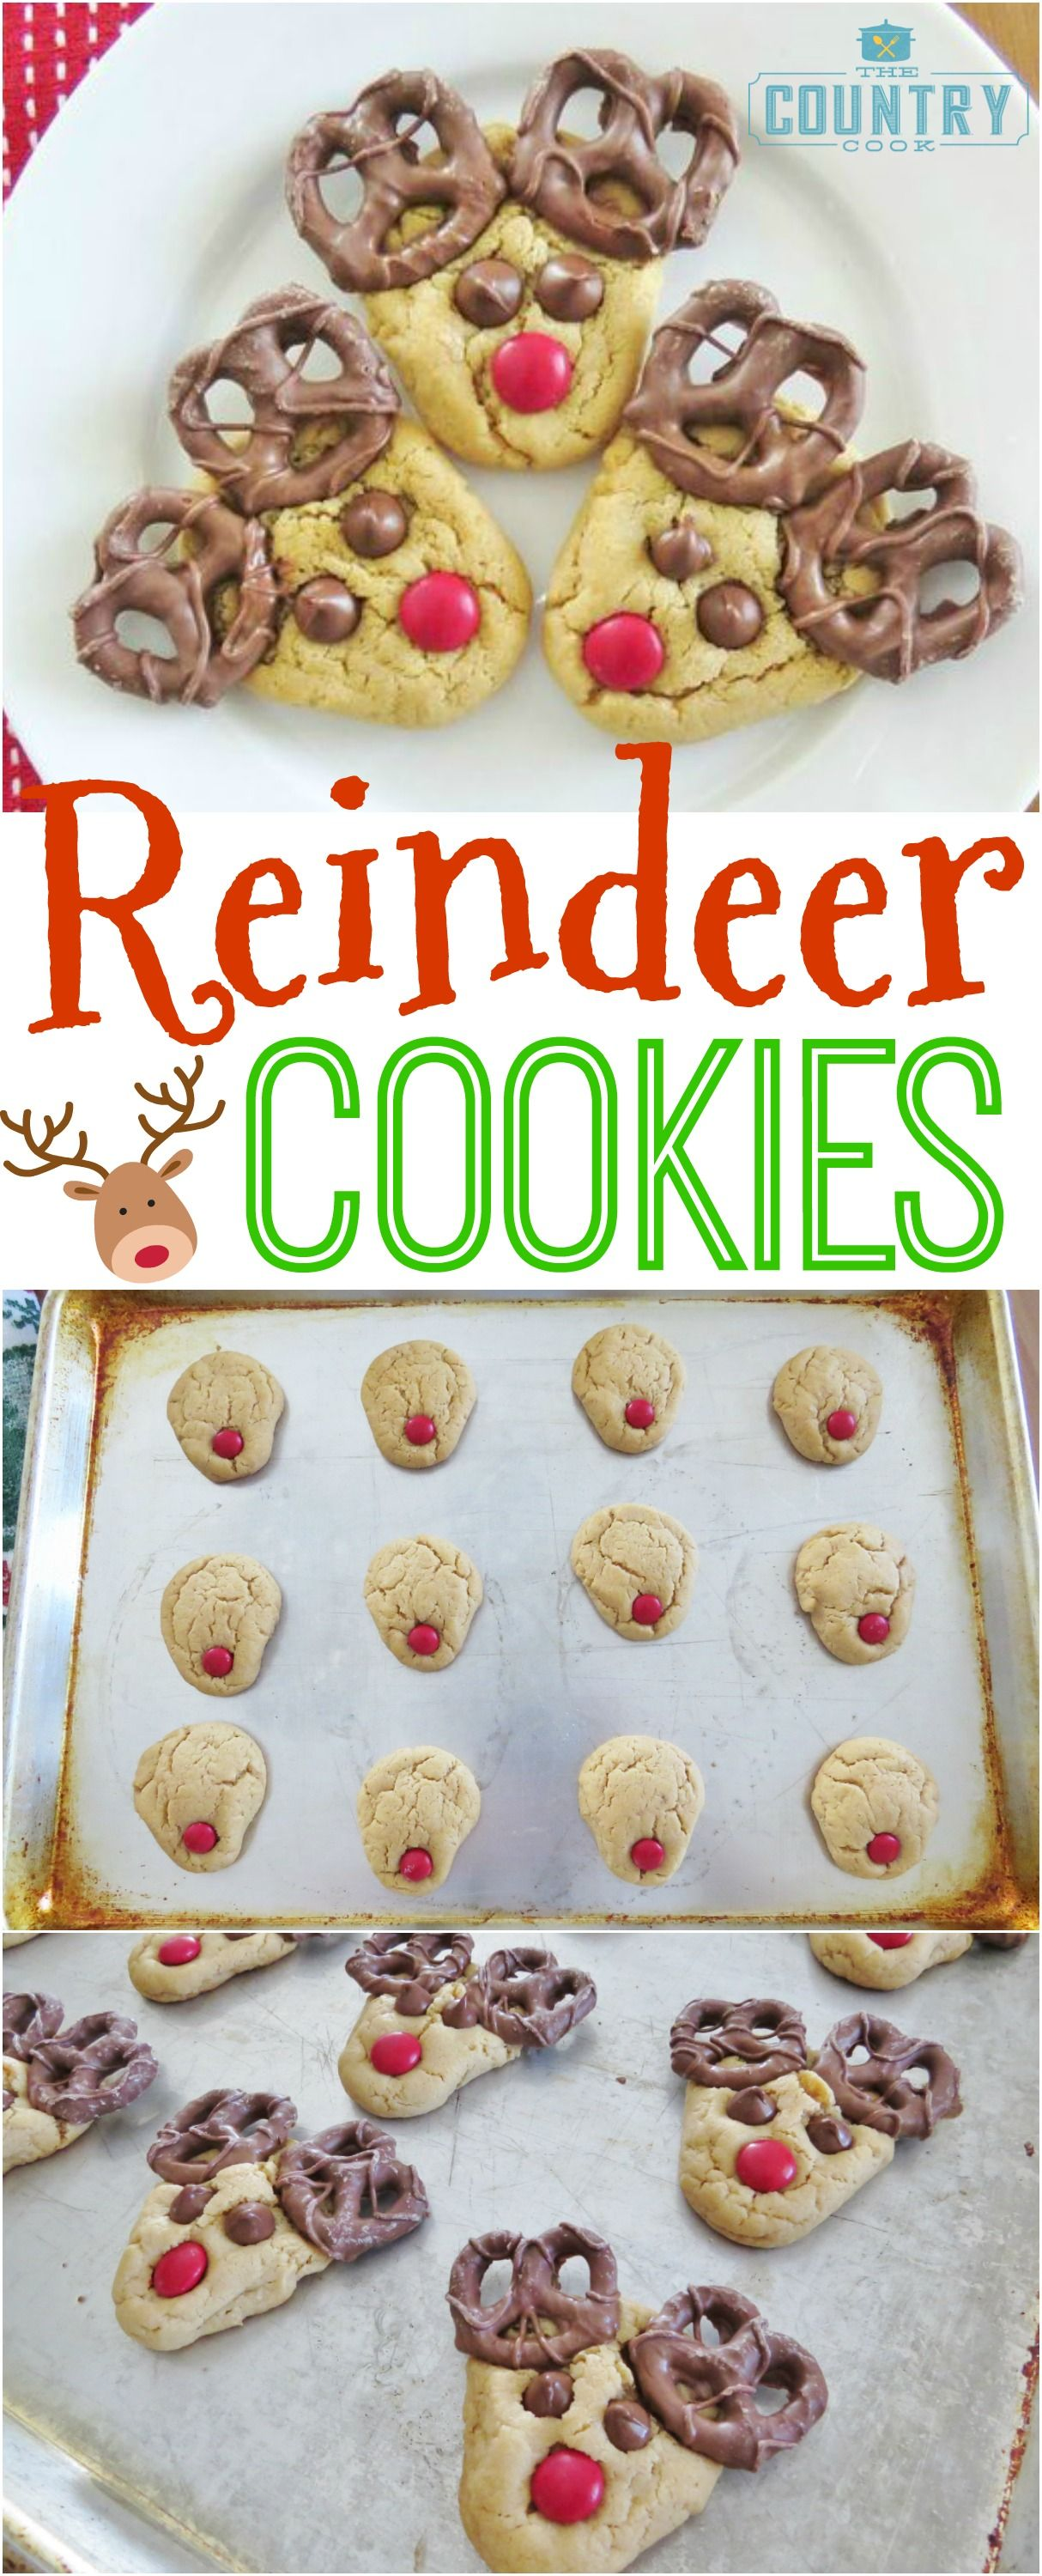 Easy and adorable Reindeer Cookies recipe from The Country Cook. These are always a hit at every holiday gathering!